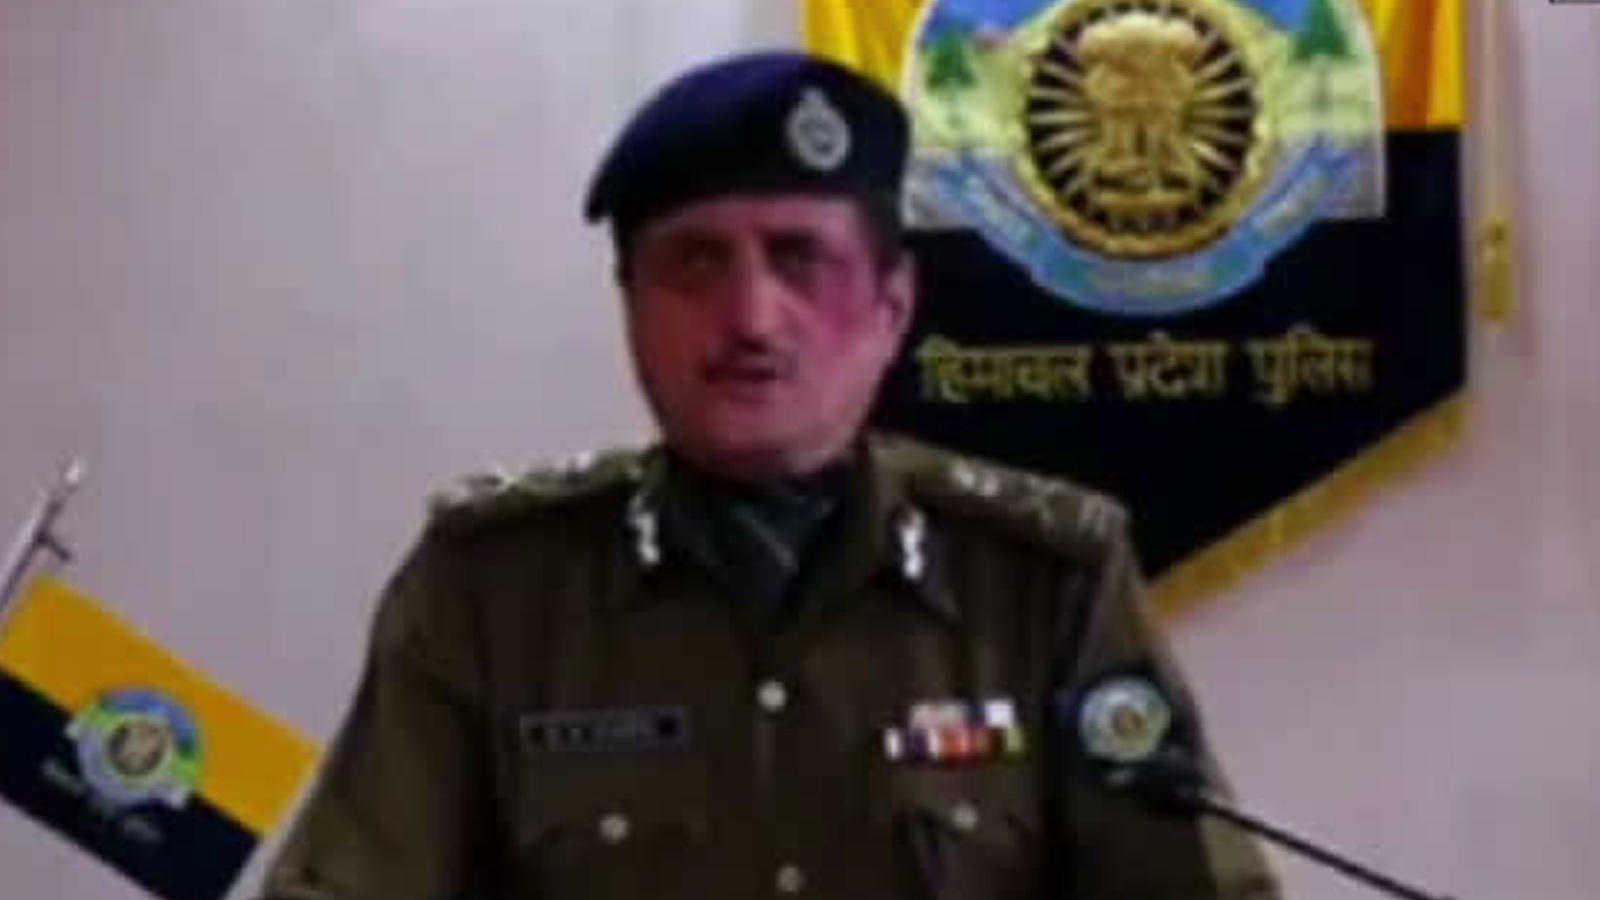 attempt-to-murder-charge-for-covid-19-patient-who-spit-on-someone-himachal-pradesh-dgp